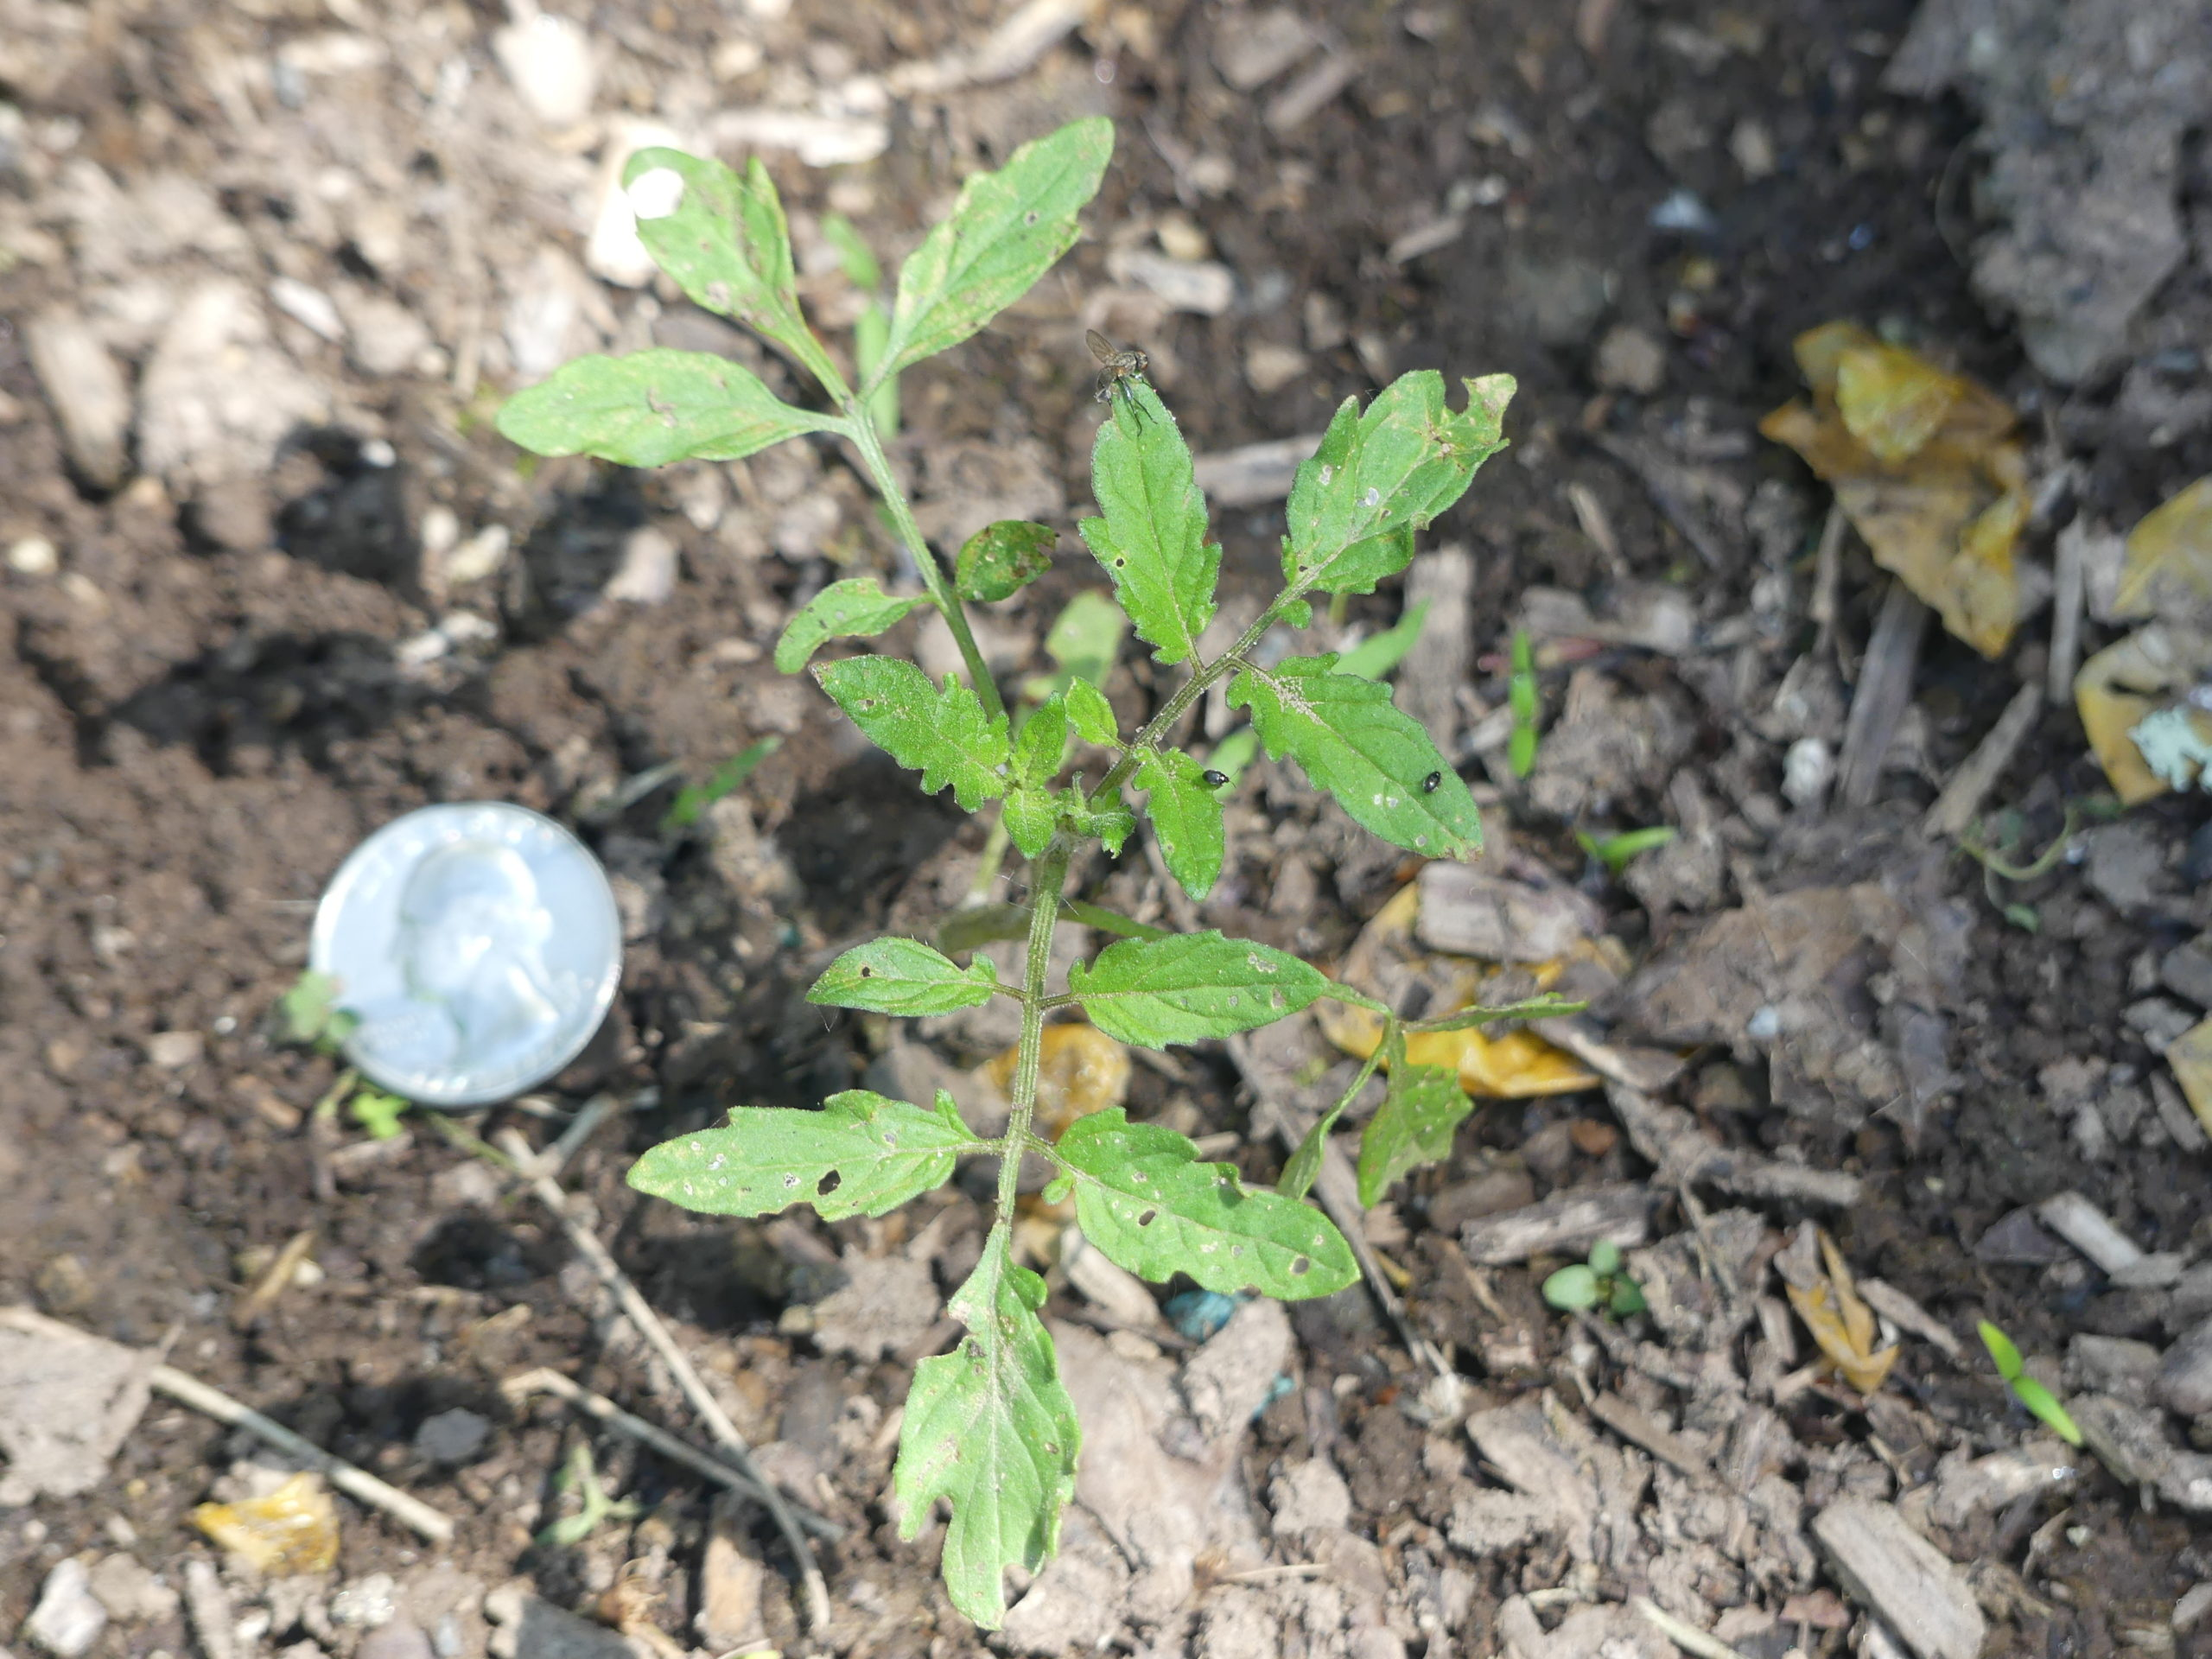 A Sweet 100 seedling that sprouted from a dropped fruit last summer. Will it pick up the soil-borne diseases resulting from poor sanitation practices? Stay tuned. By August, this 6-inch seedling may be 5 feet tall and 15 feet long with a root system covering 35 square feet. ANDREW MESSINGER